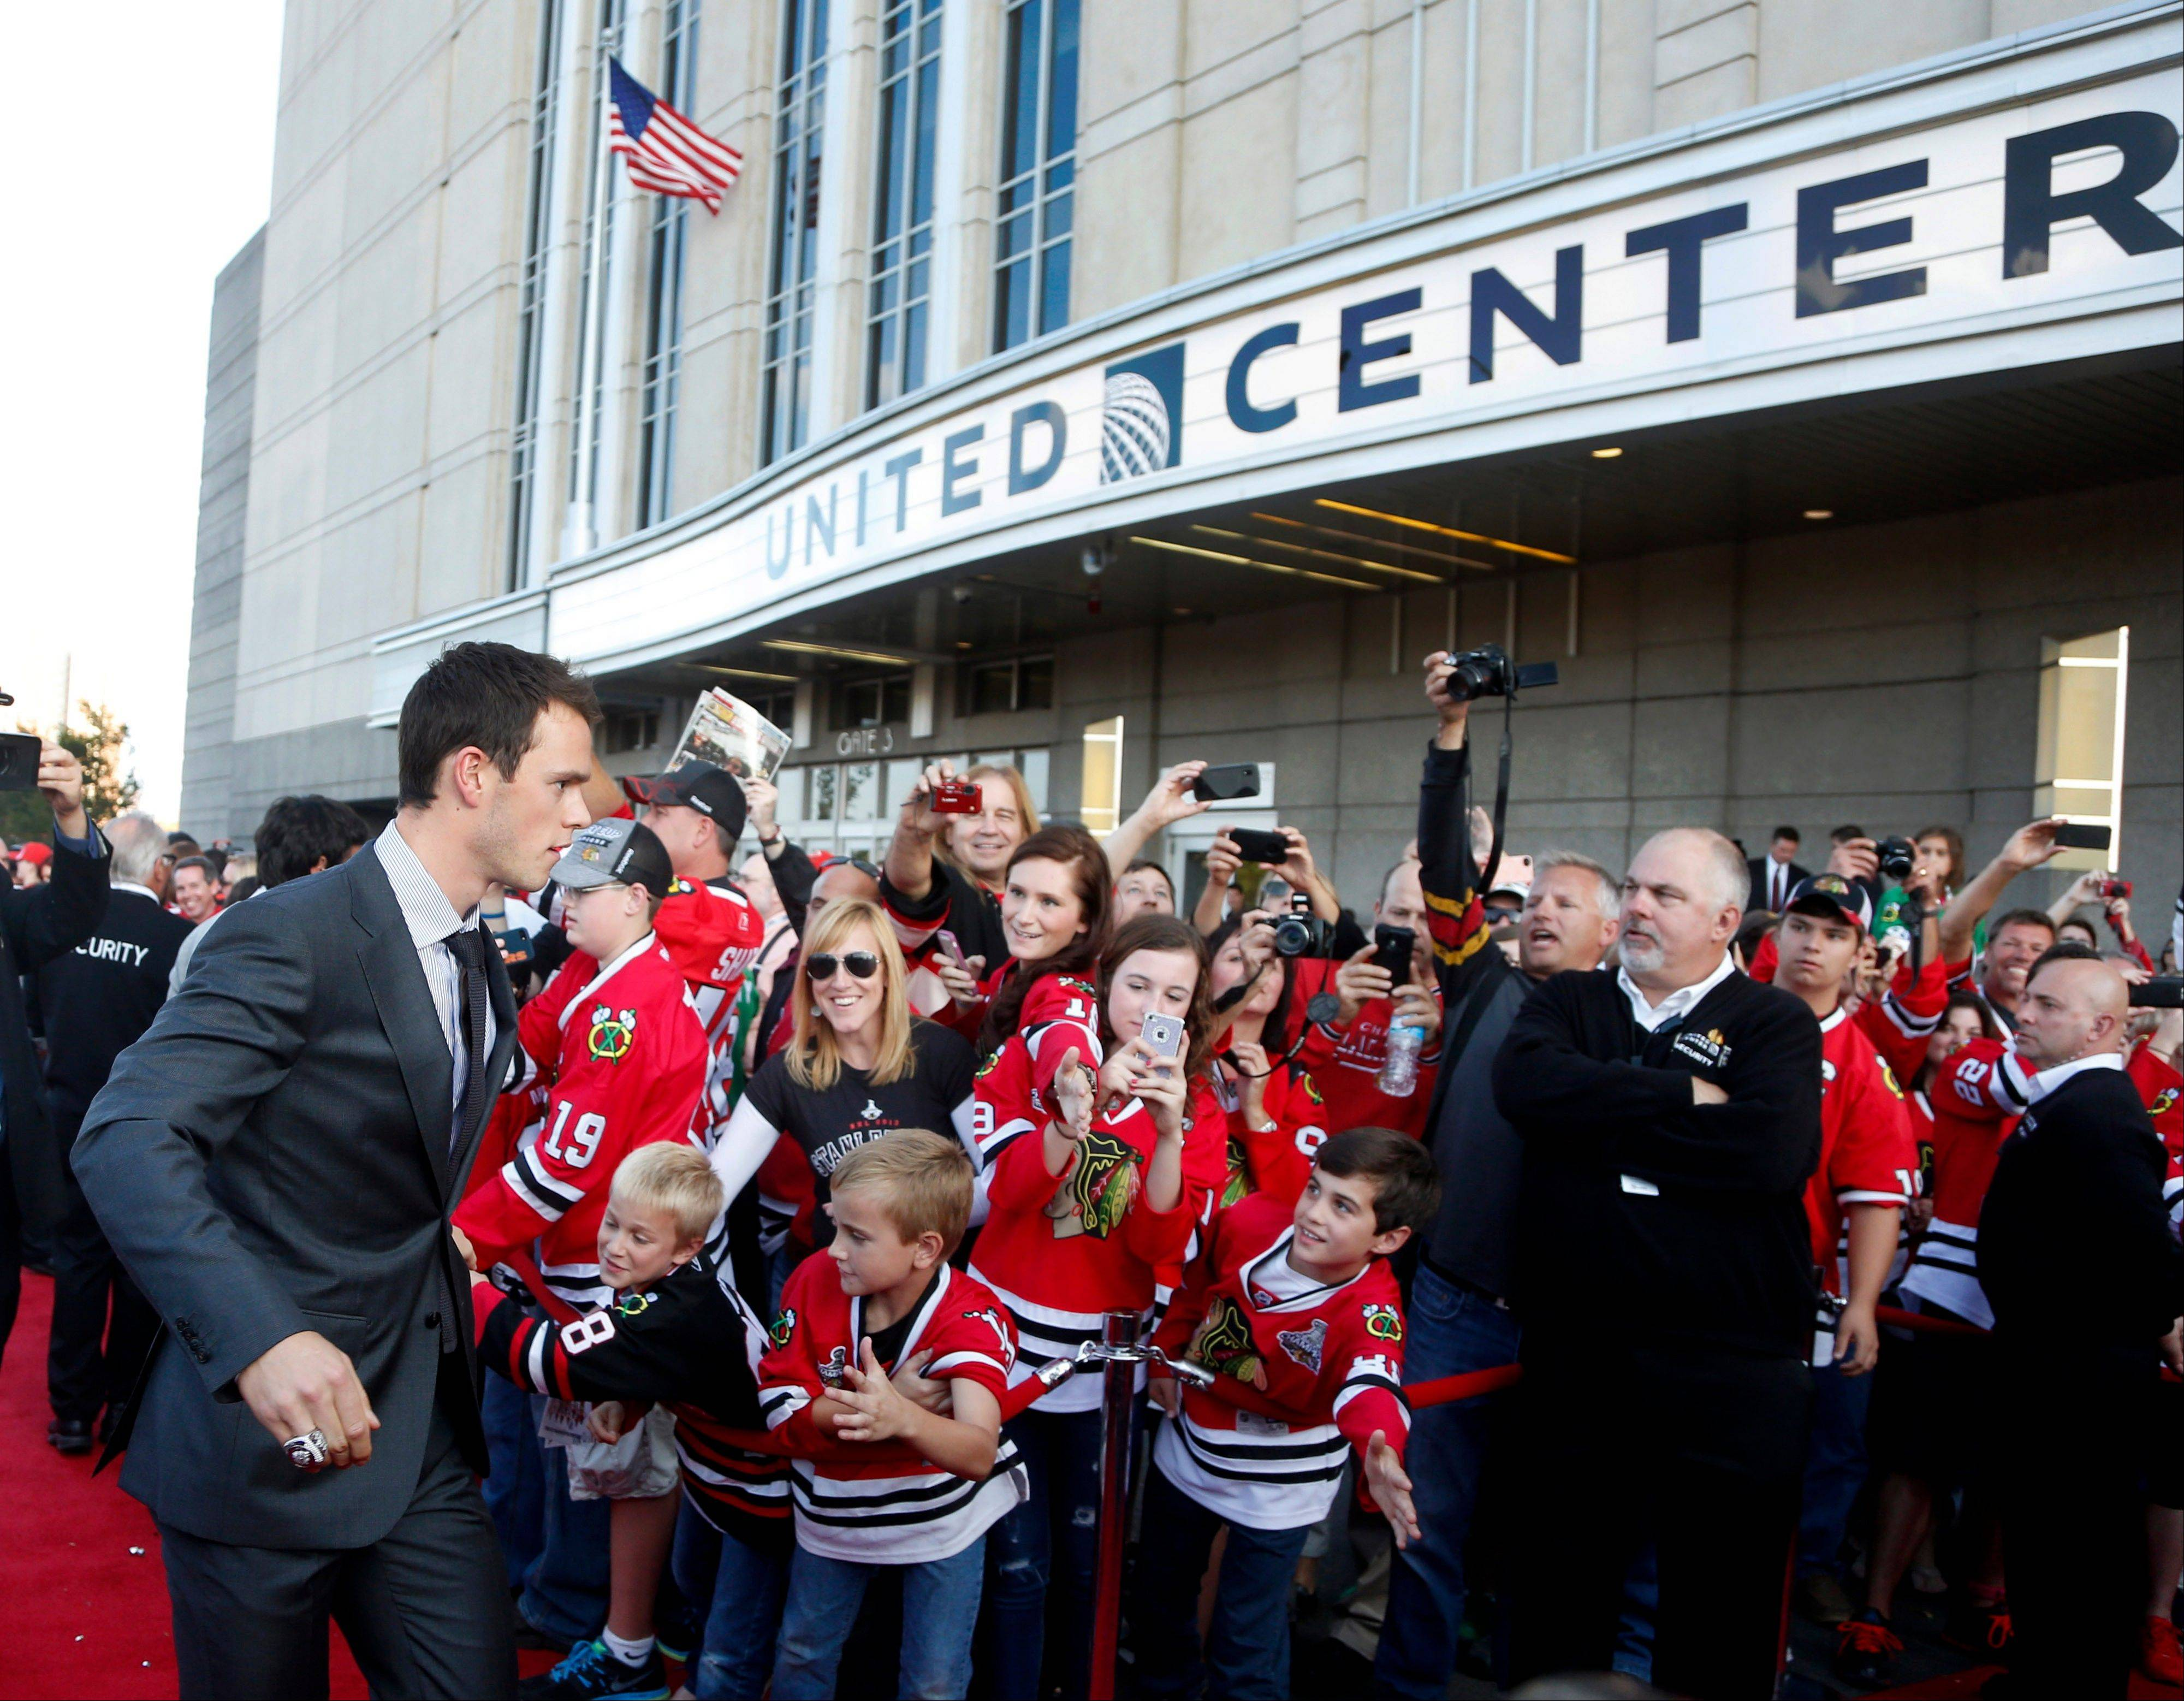 Blackhawks' center Jonathan Toews walks the red carpet outside the United Center as the team arrives for their season-opening NHL hockey game against the Washington Capitals Tuesday, Oct. 1, 2013, in Chicago.